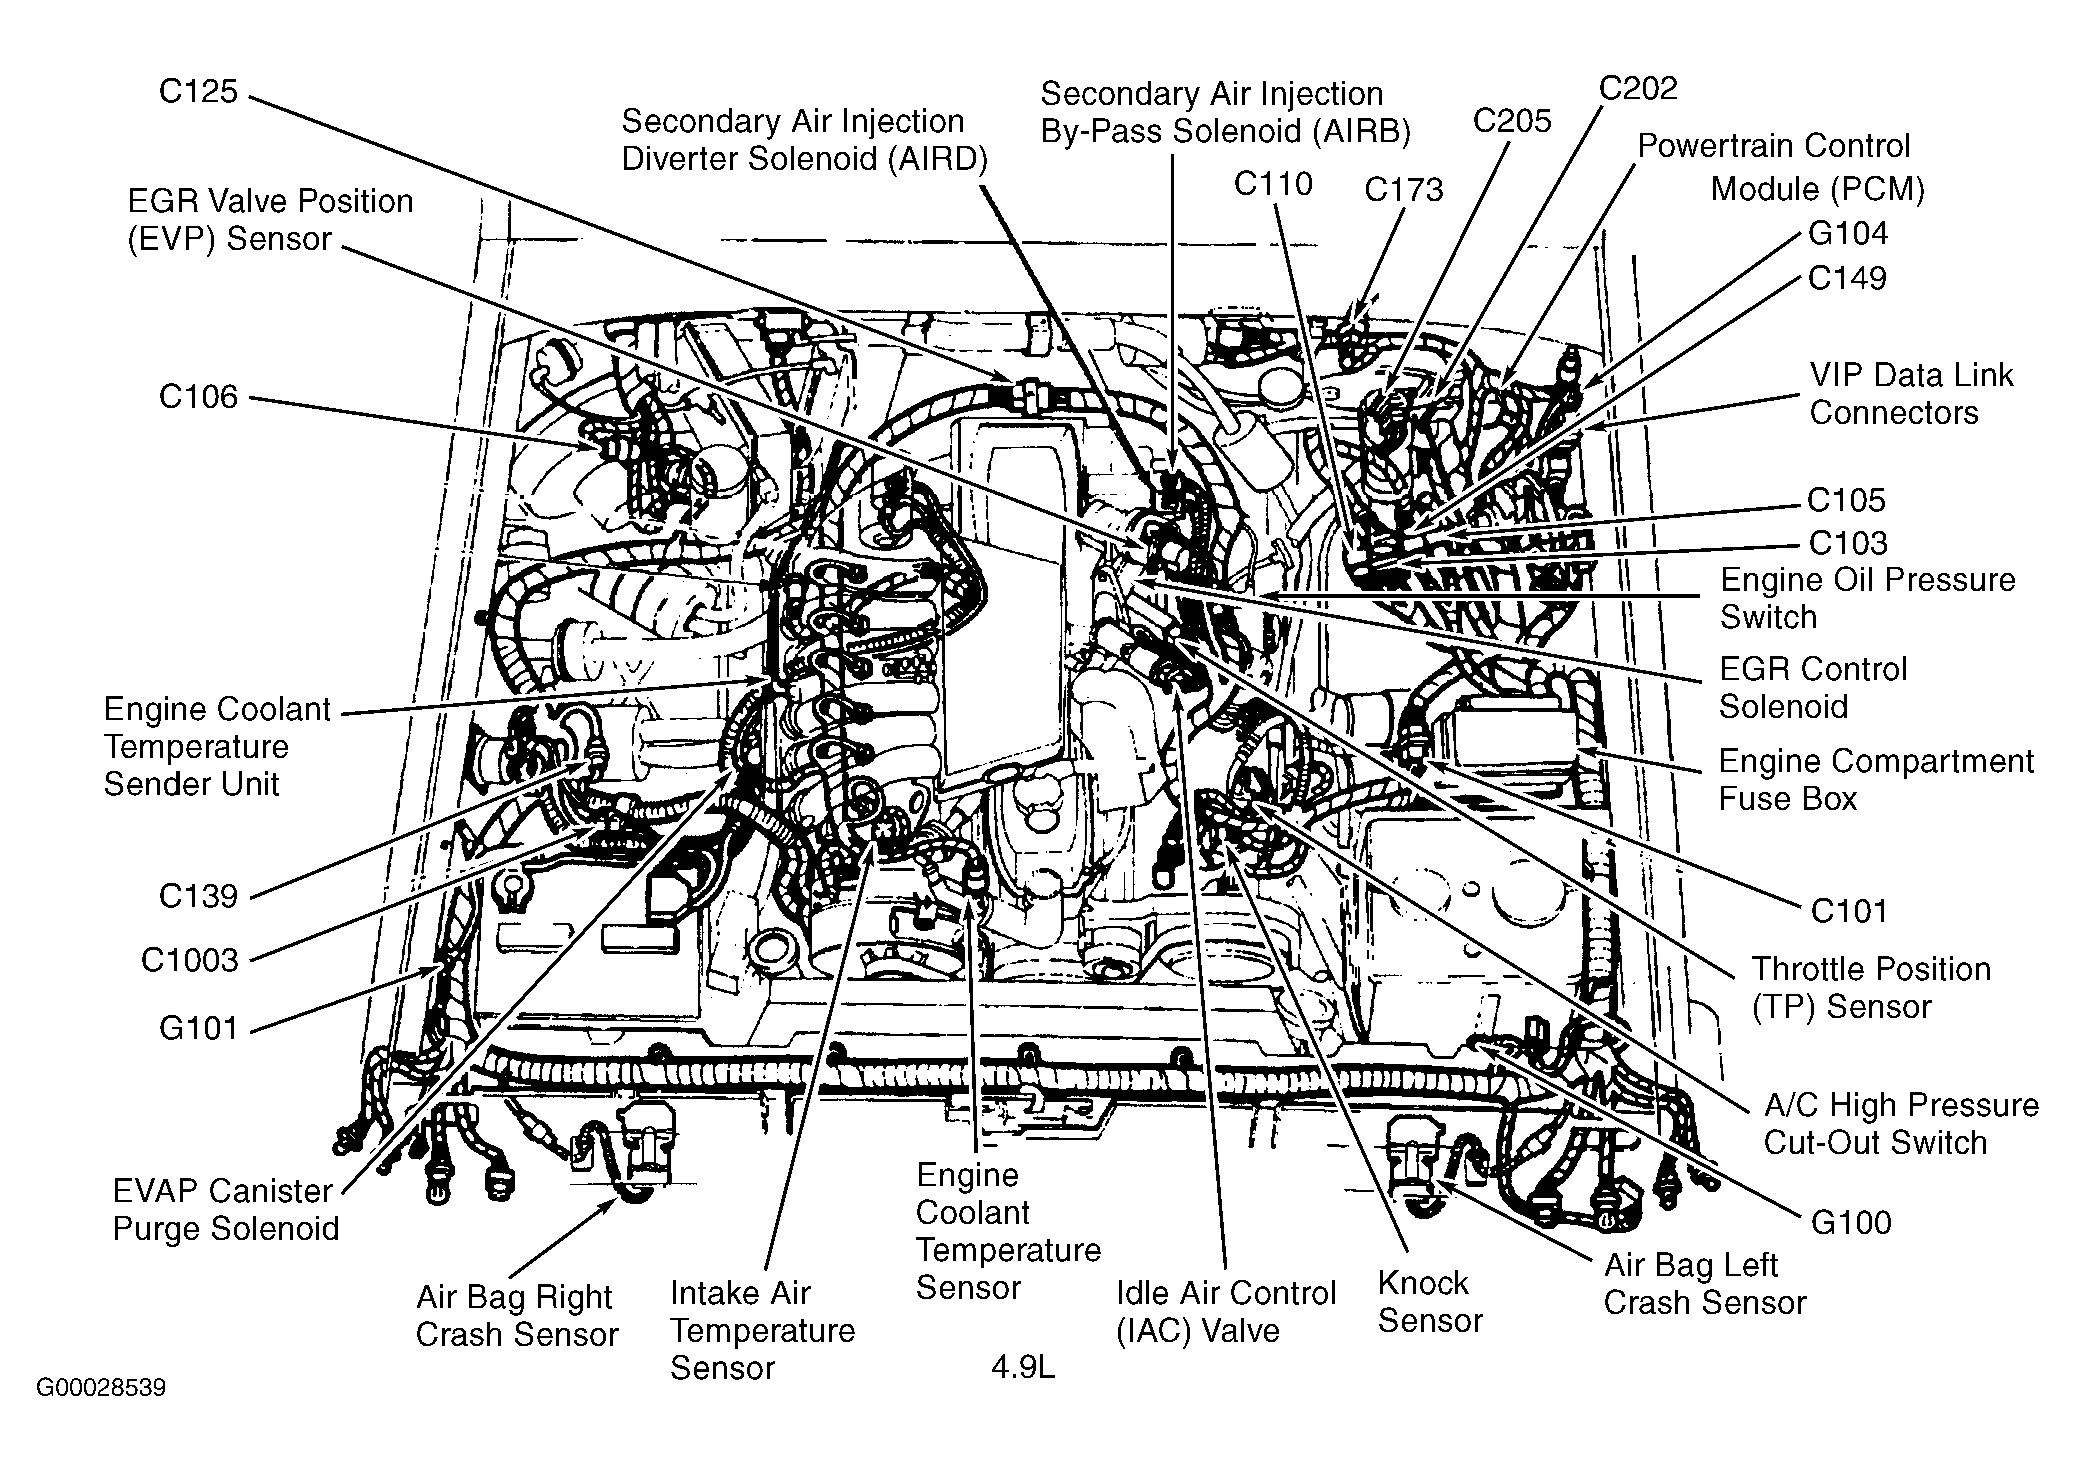 1989 Ford Tempo Fuse Box Location | Wiring Diagram  F Engine Diagram on 93 cherokee engine, 93 cavalier engine, 93 ford f 900 engine, 93 capri engine, 93 regal engine, 93 accord engine,